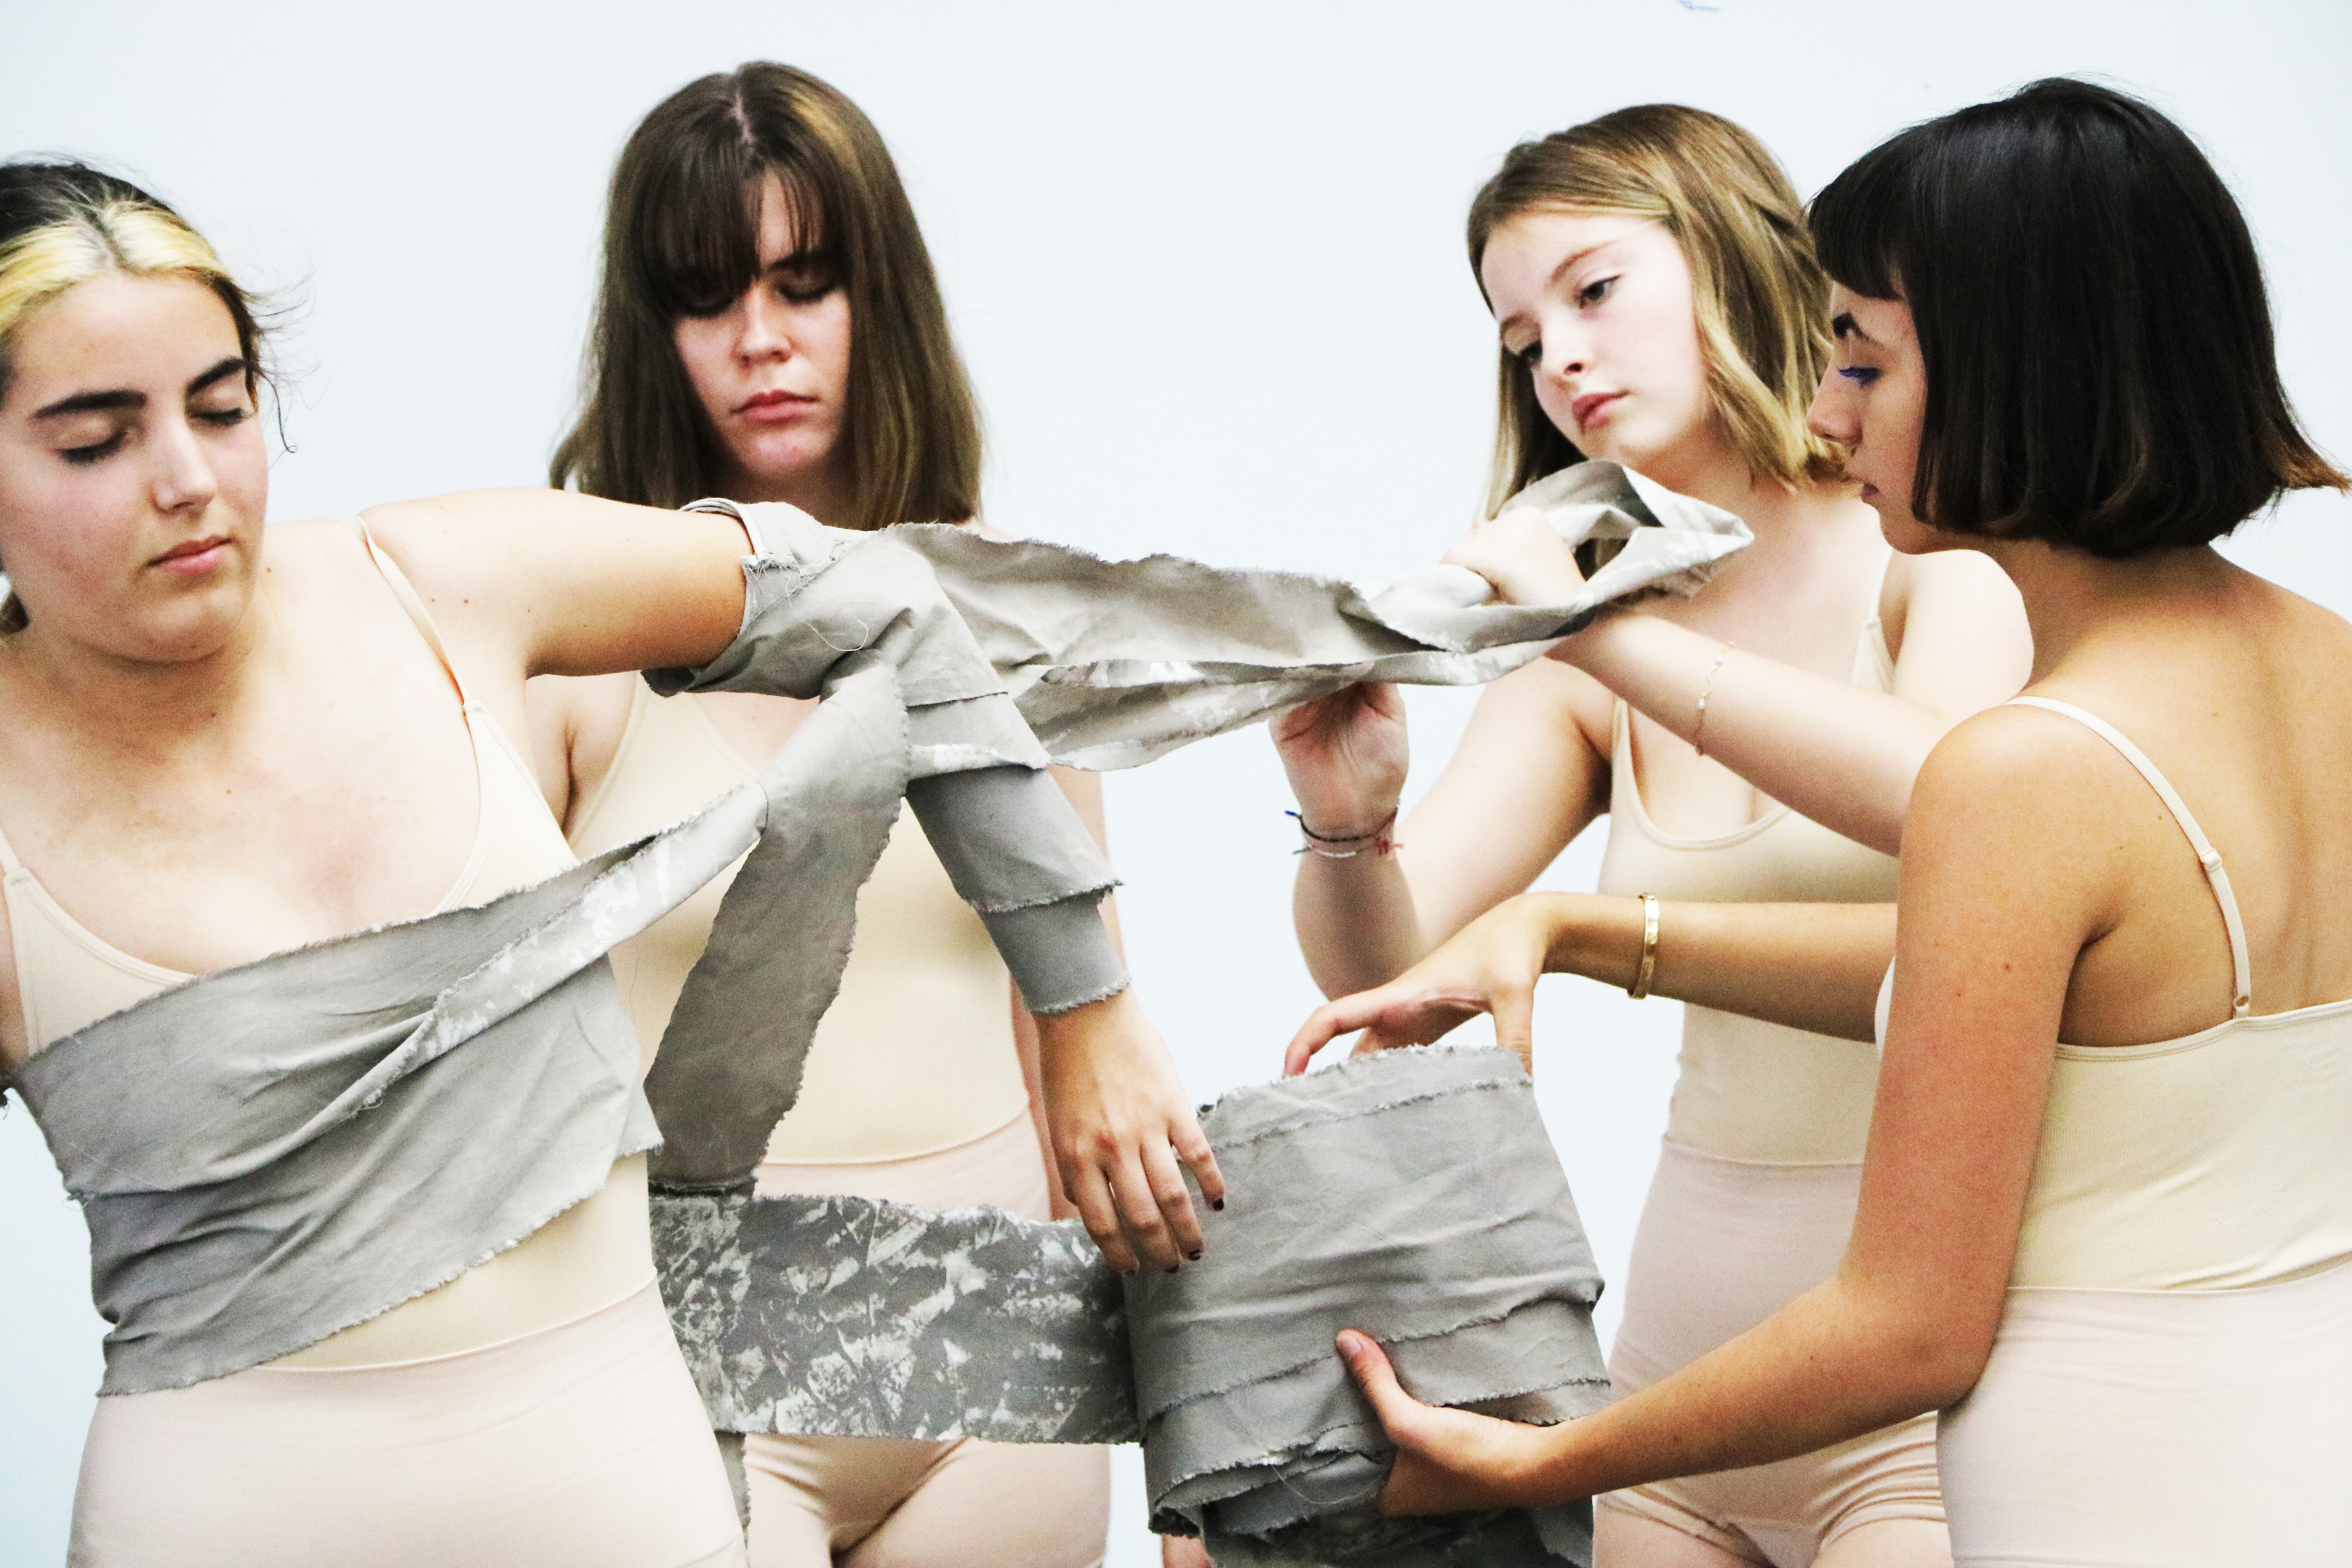 Fashion students performance, three girls wrap a fourth with grey material